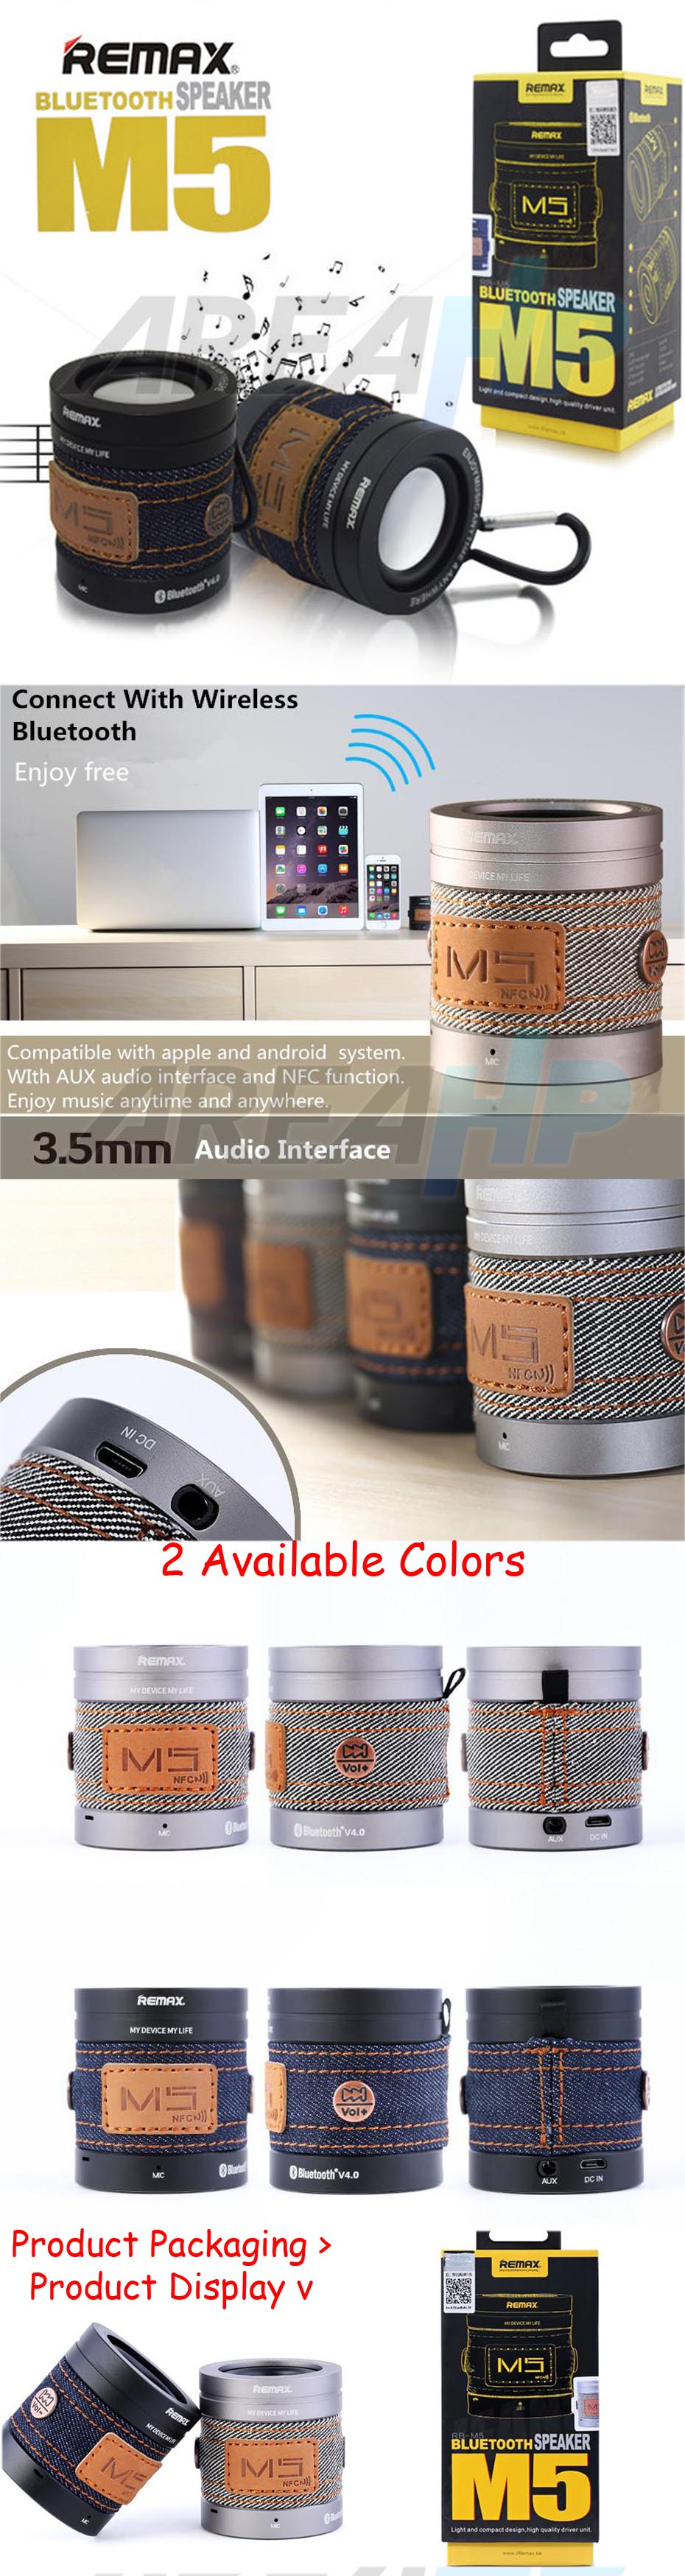 Remax Denim Mini Bluetooth Portable Speaker CSR 4